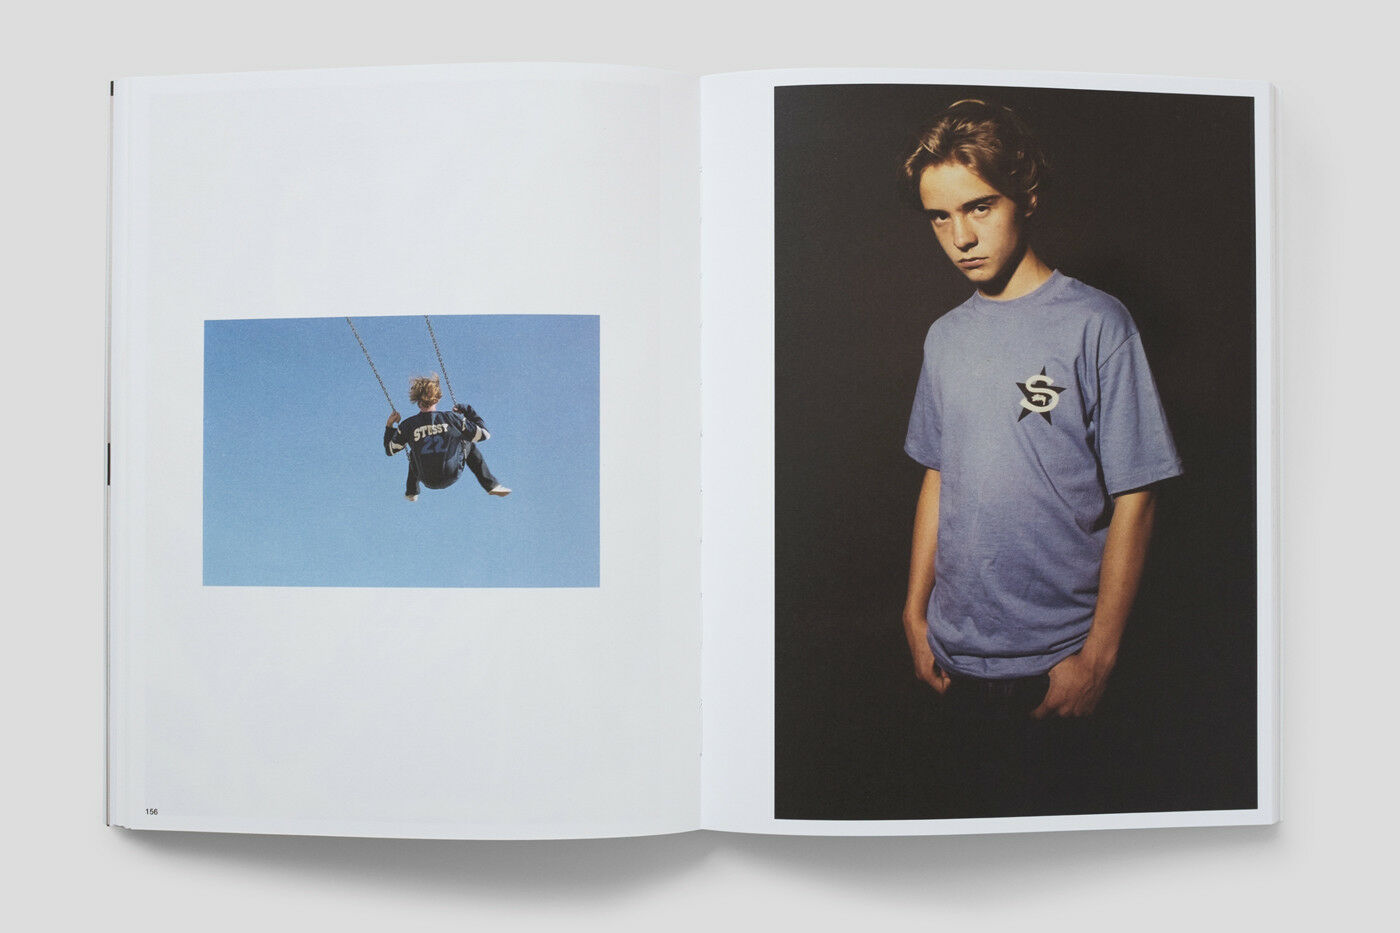 AN IDEA BOOK ABOUT T-SHIRTS BY BY BY STUSSY Ari Marcopoulos Willy Vanderperre SEALED 9a2e89